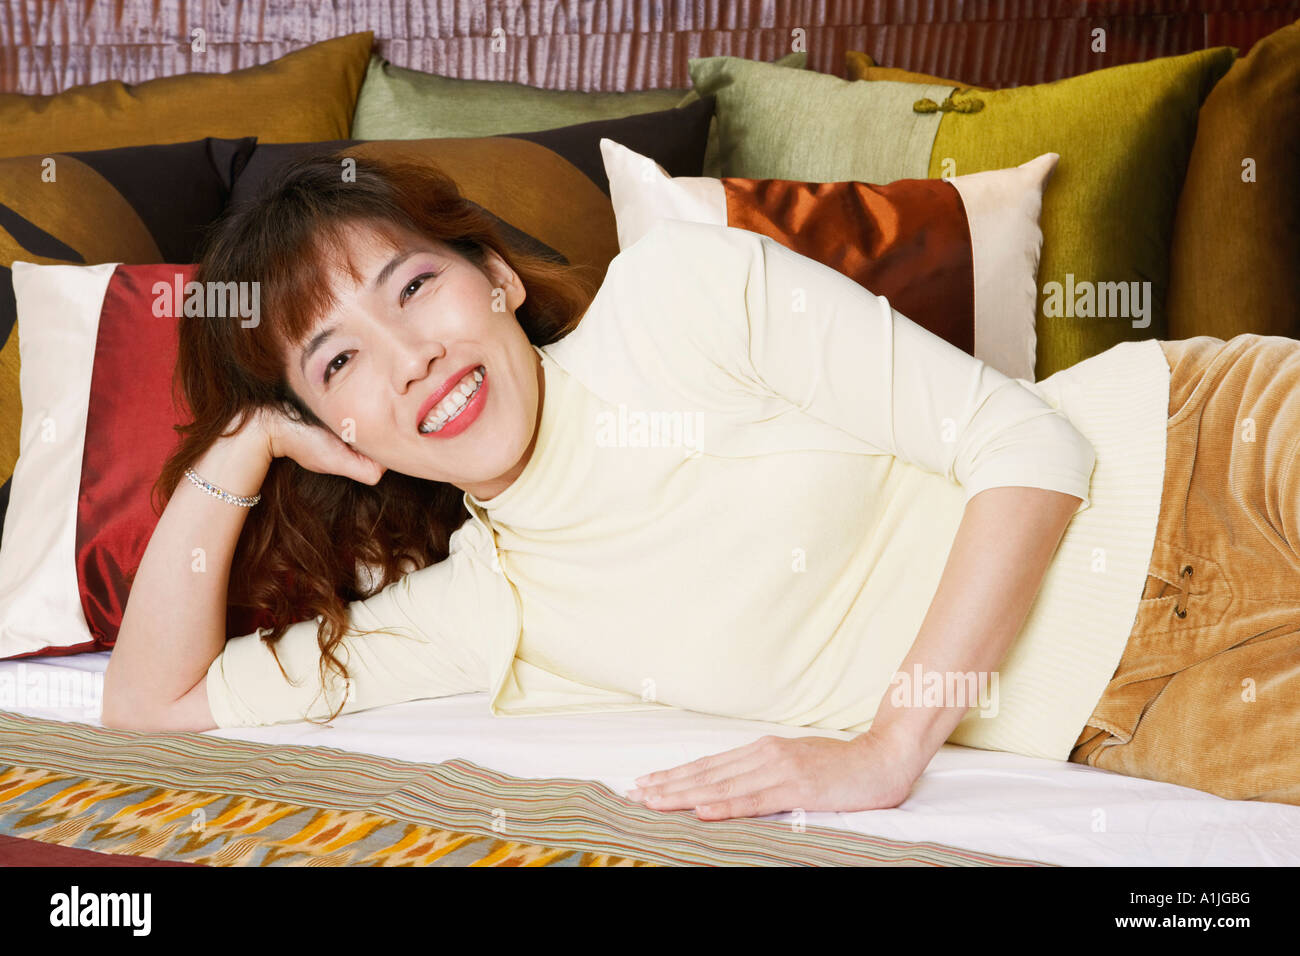 Portrait of a young woman lying on the bed and smiling - Stock Image